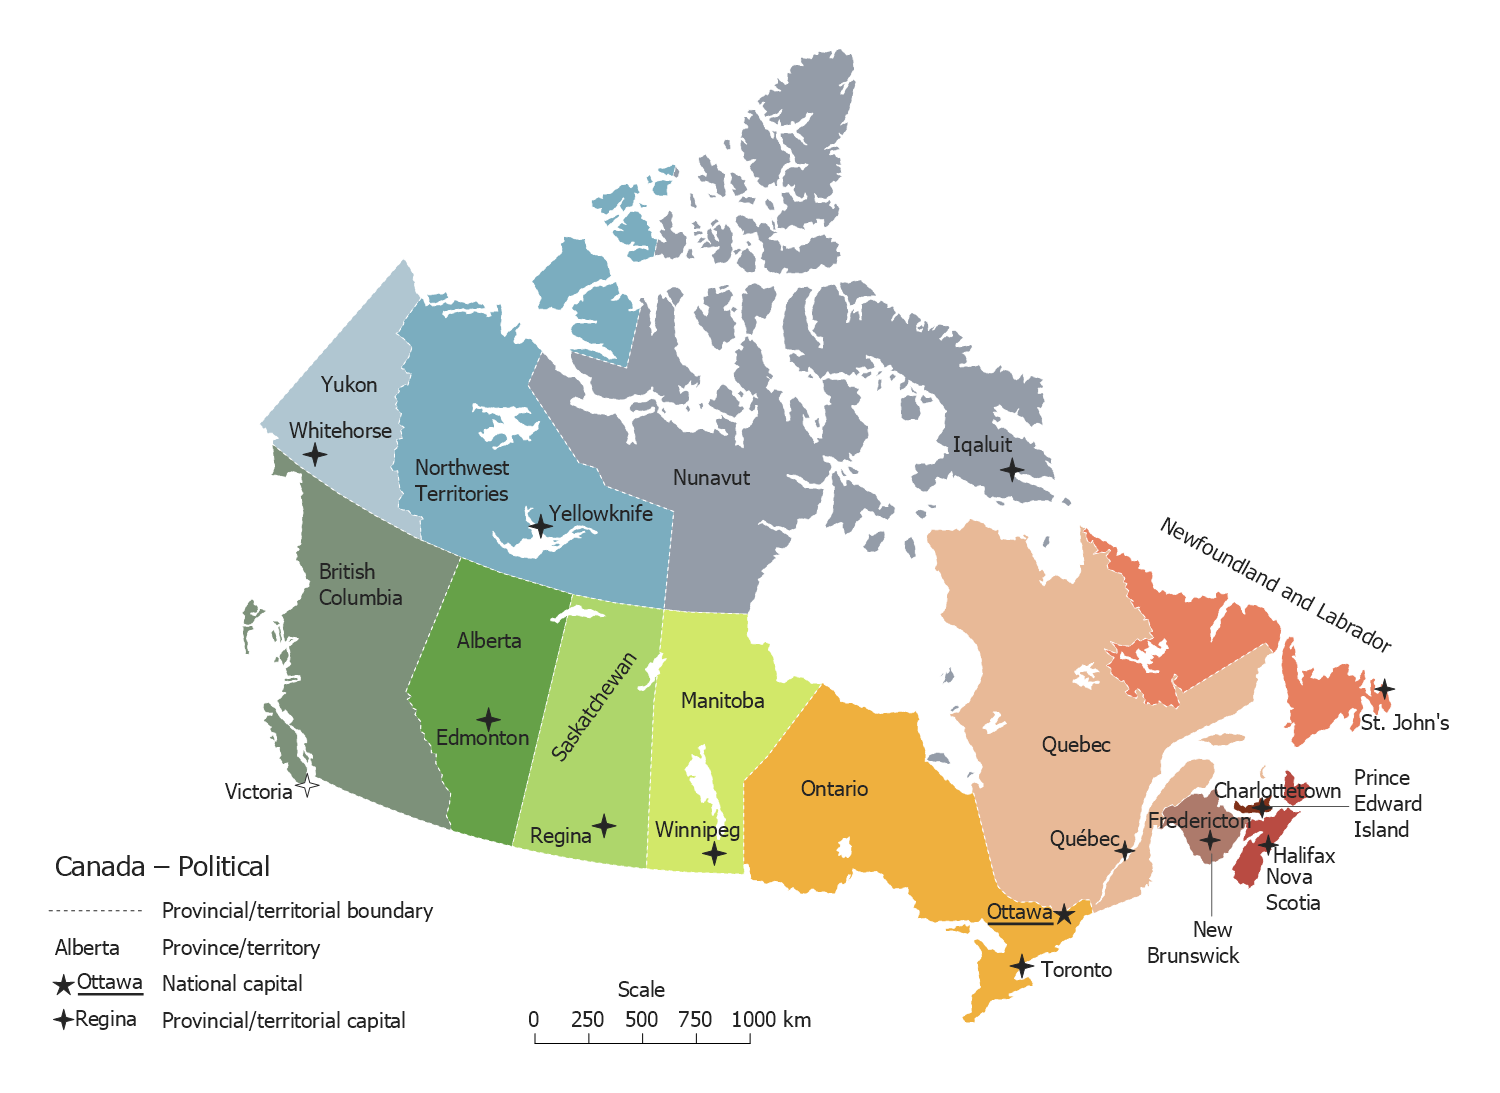 25 Unique Map Of Canada Provinces And Territories And ... on natural resource map of canada, blank outline map of canada, labeled map of canada, colored map of canada, funny map of canada, climate map of canada, blank map of us and canada, black line map of canada, printable map of canada, black and white map of canada, blank map of usa and canada, a political map of canada, large map of canada, provincial map of canada, detailed map of canada, population density map of canada, first nations people of canada, unmarked map of canada, biome map of canada, a physical map of canada,